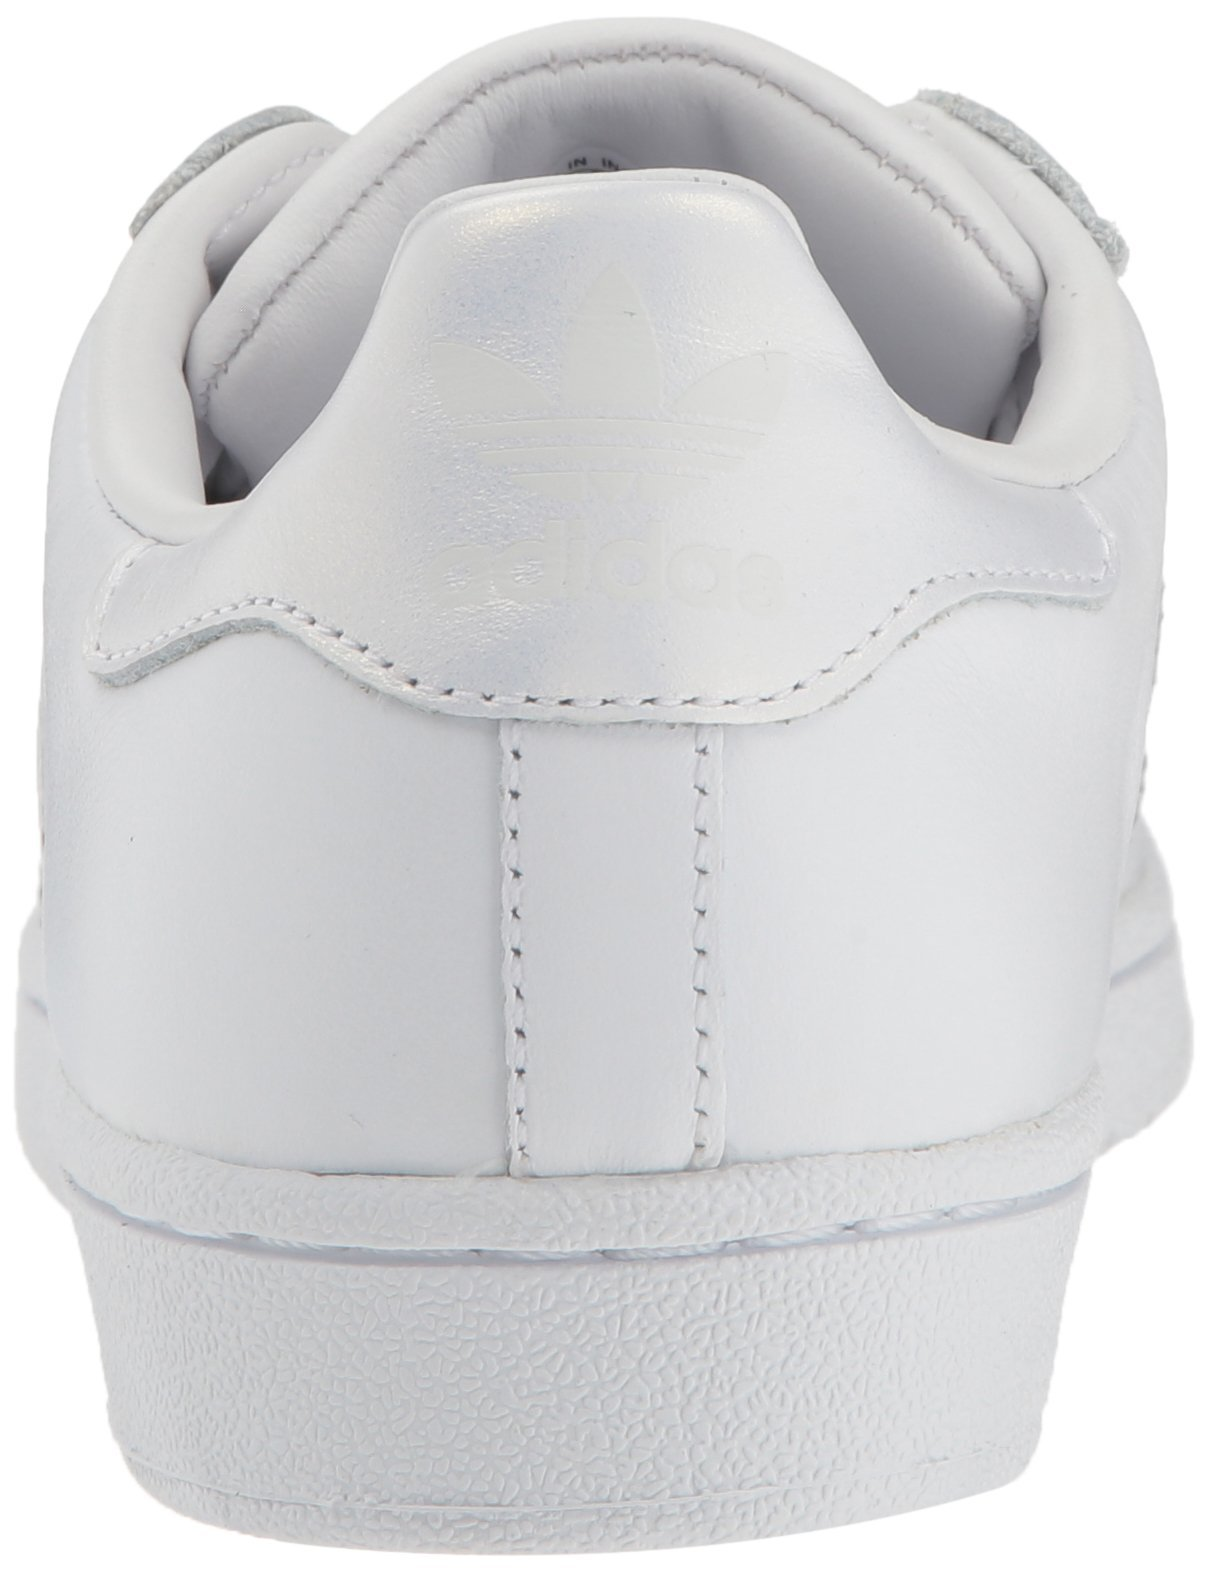 adidas Originals Women's Superstar Sneaker, White/White/Gray, 10